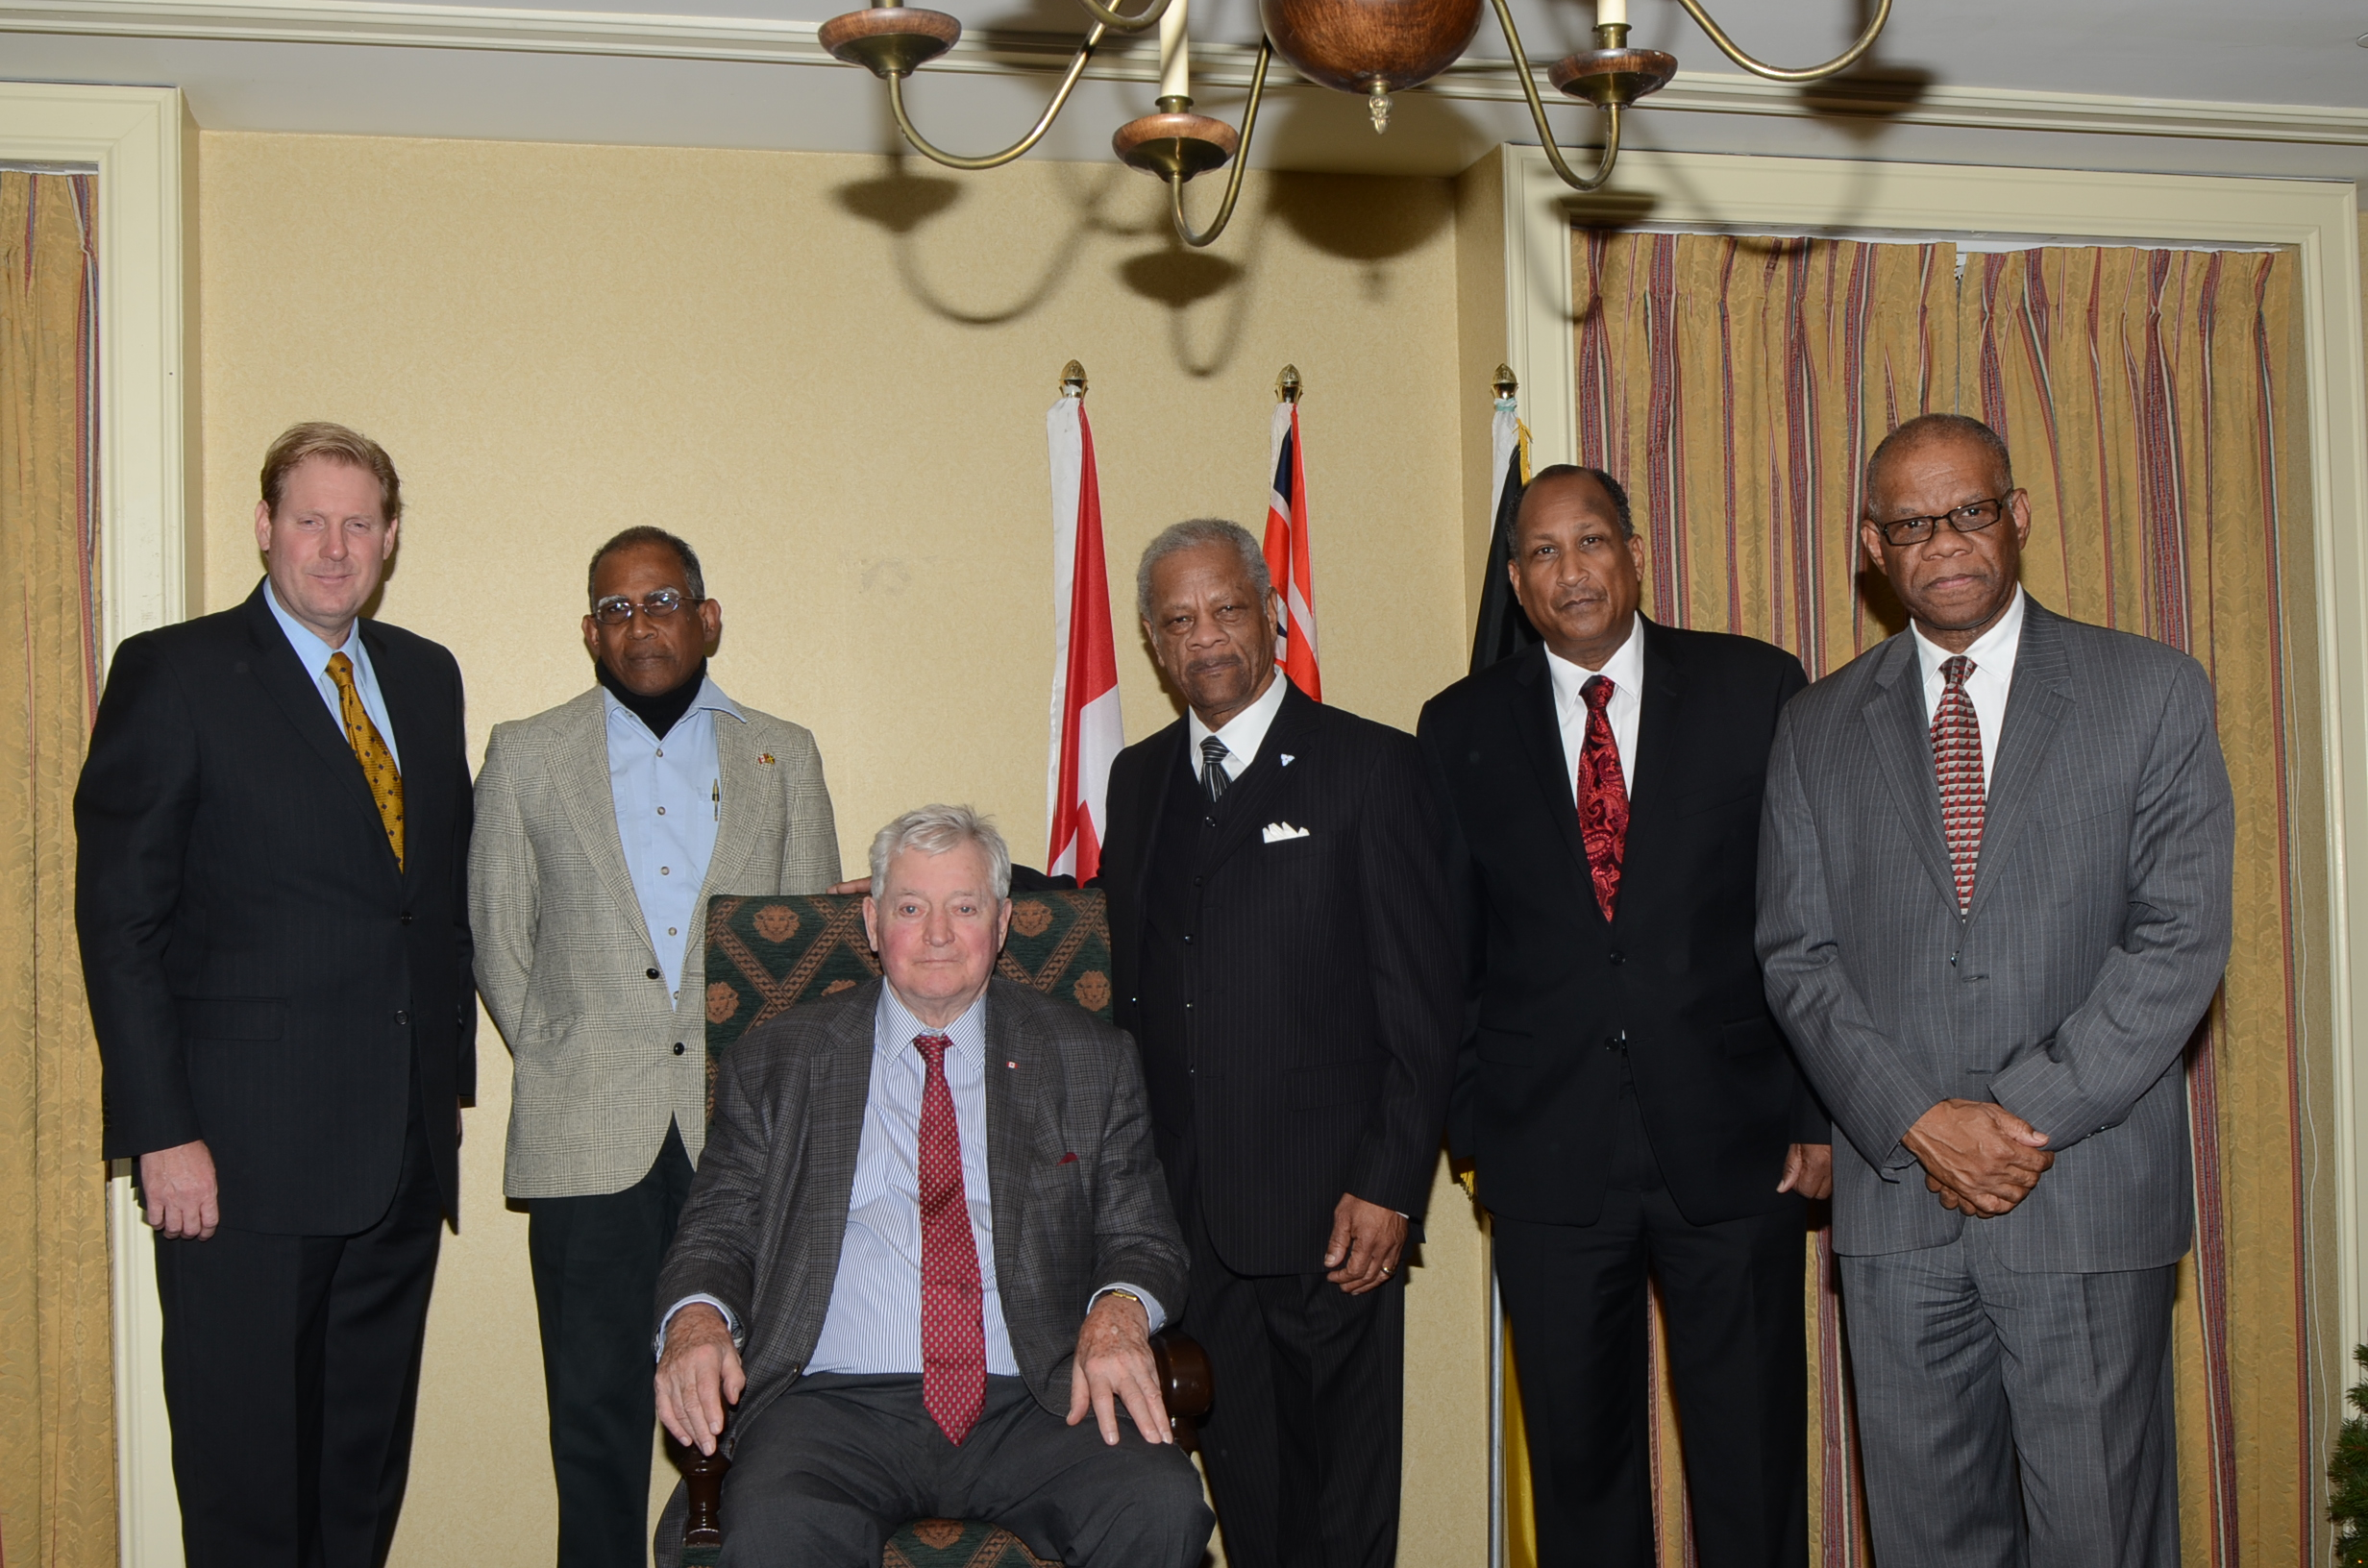 Howard Shearer (second from left) with Marc Kealey (r), Franklin McDonald, former Canadian Prime Minister John Turner, Rev. Audley James and former Jamaican Consul General in Toronto George Ramocan were part of the Jamaican-Canadian Initiative for Disaster Resilience & Response.